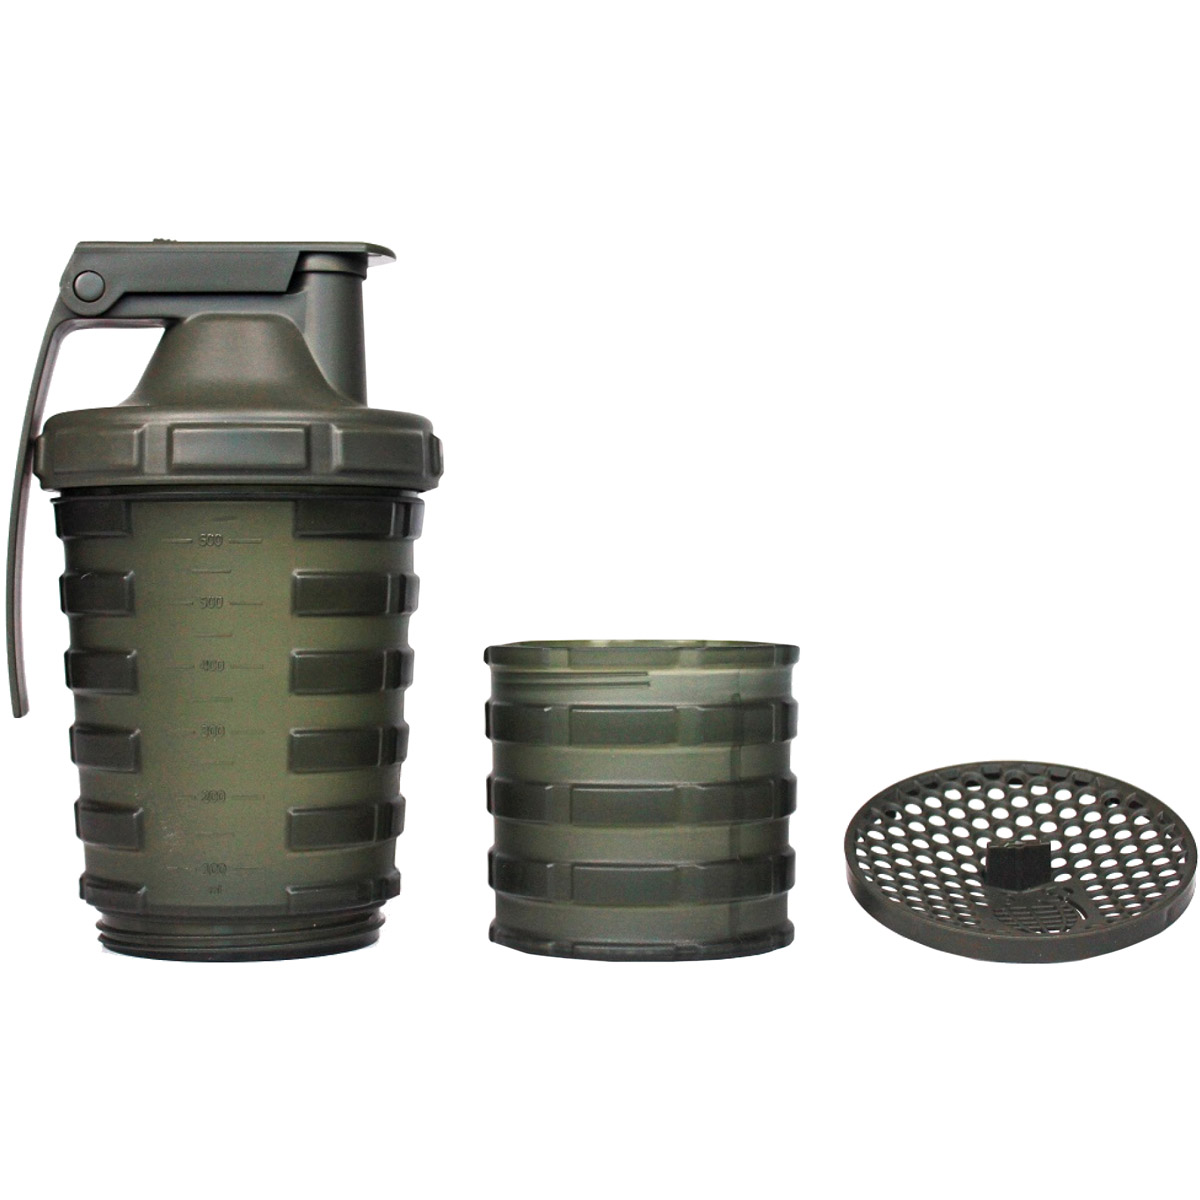 thumbnail 8 - Grenade-20-oz-Shaker-Blender-Mixer-Bottle-with-600ml-Protein-Cup-Compartment